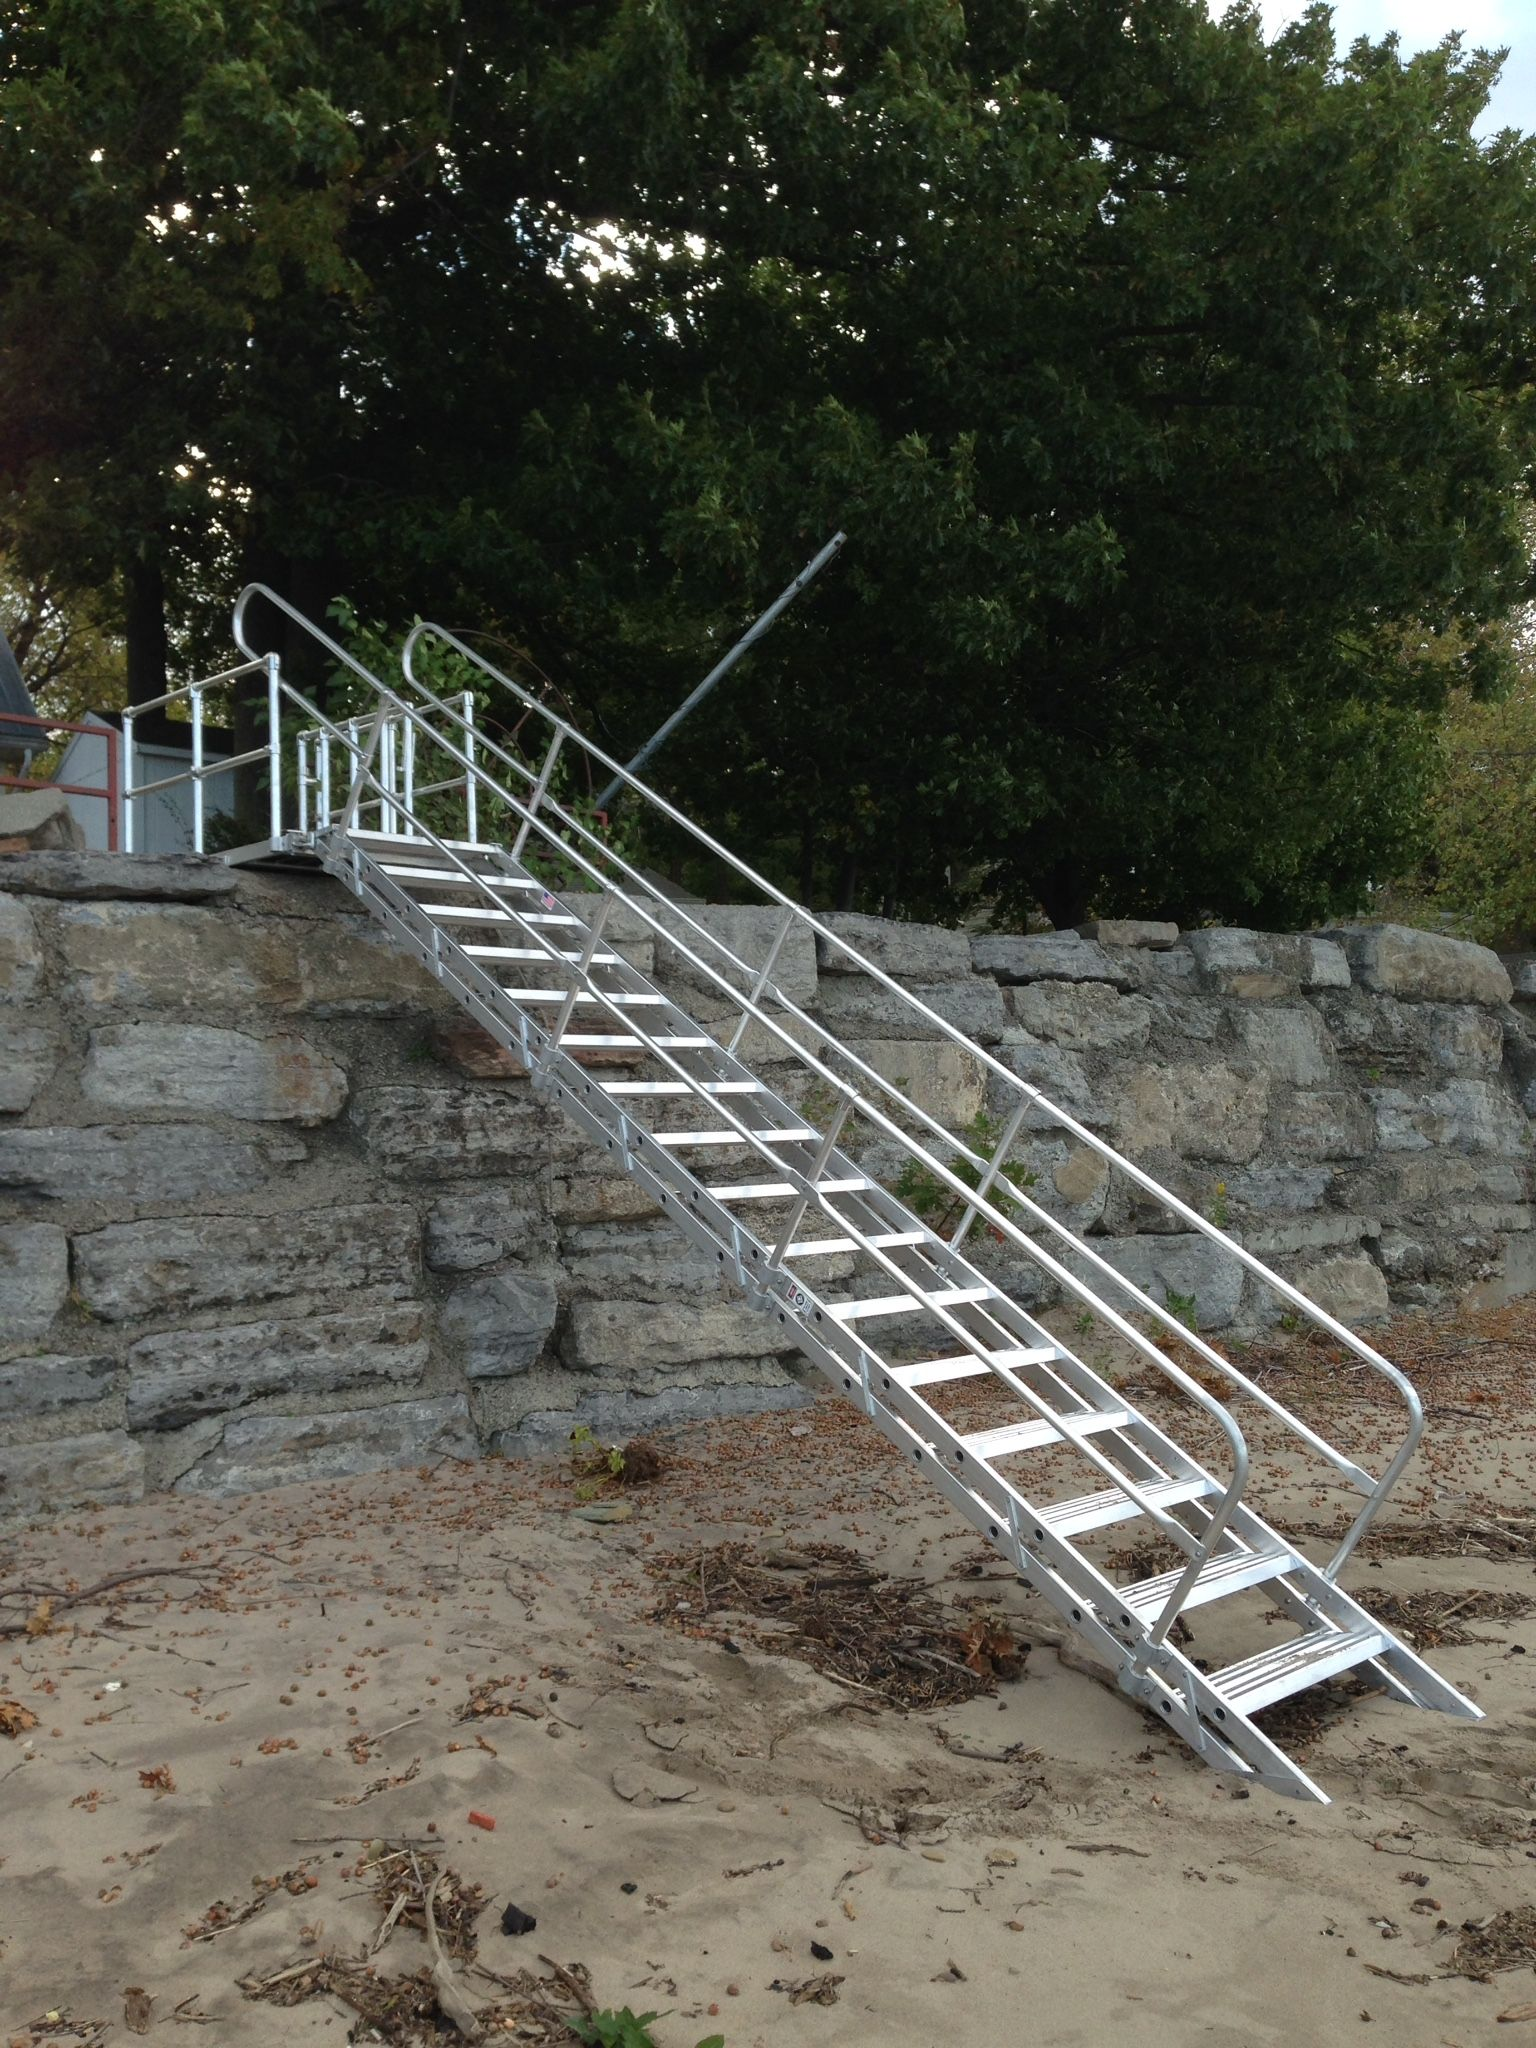 Platform And Stairway Beach Access For Lake Erie, NY! #lakeerie #stairway  #beachaccess #cottagelife #beachlife